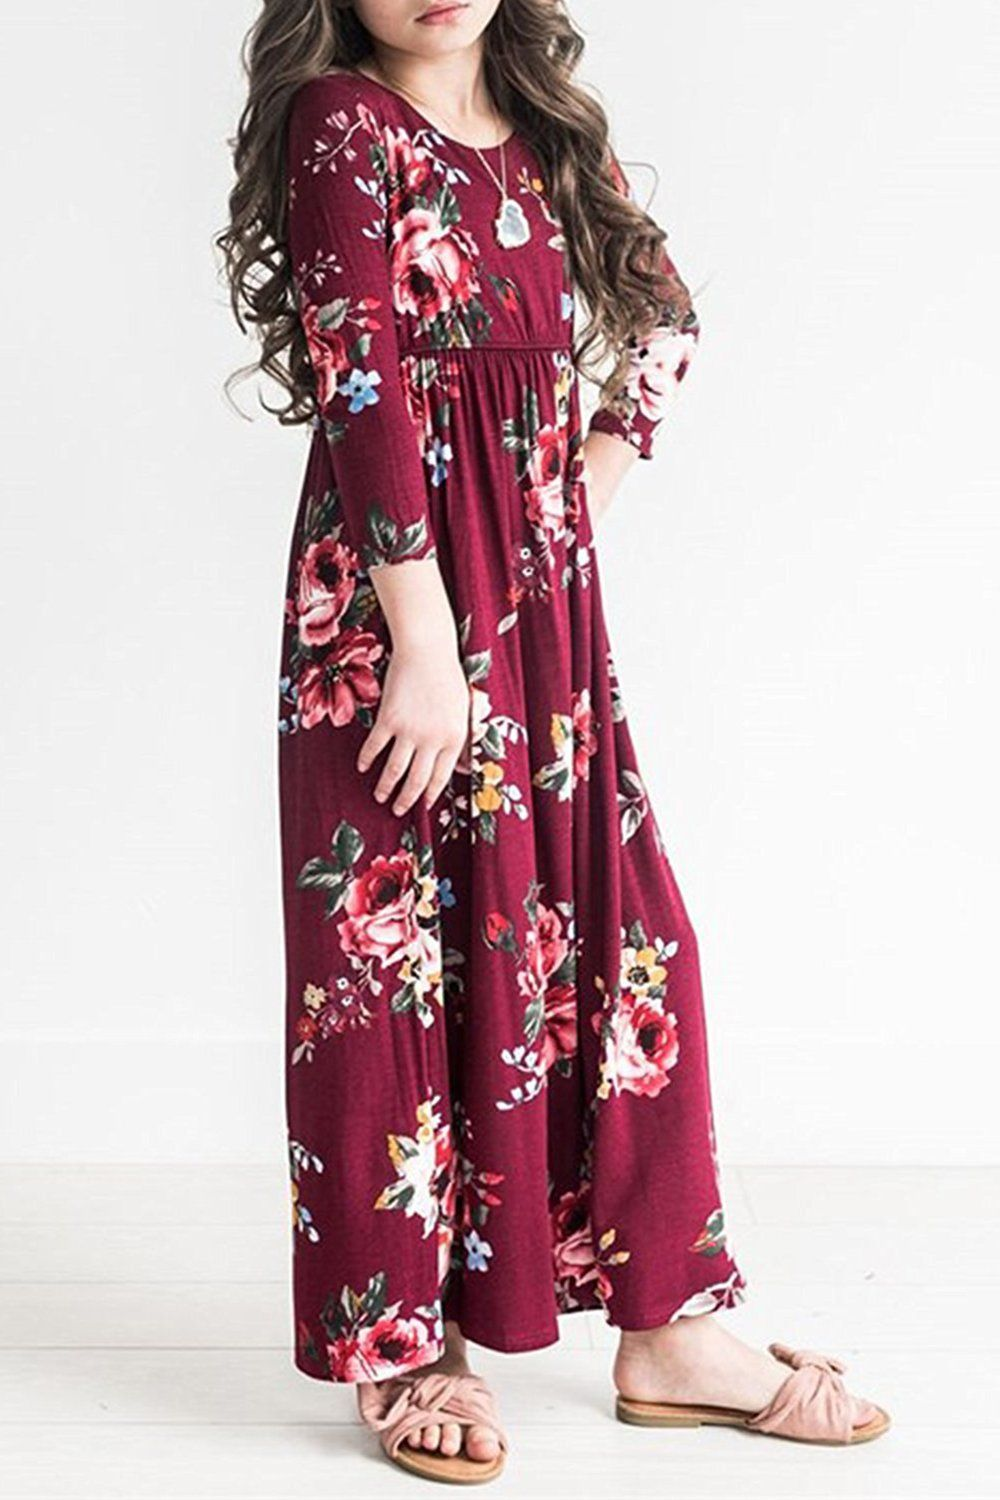 Girls flower sleeve pleated casual swing long maxi dress with